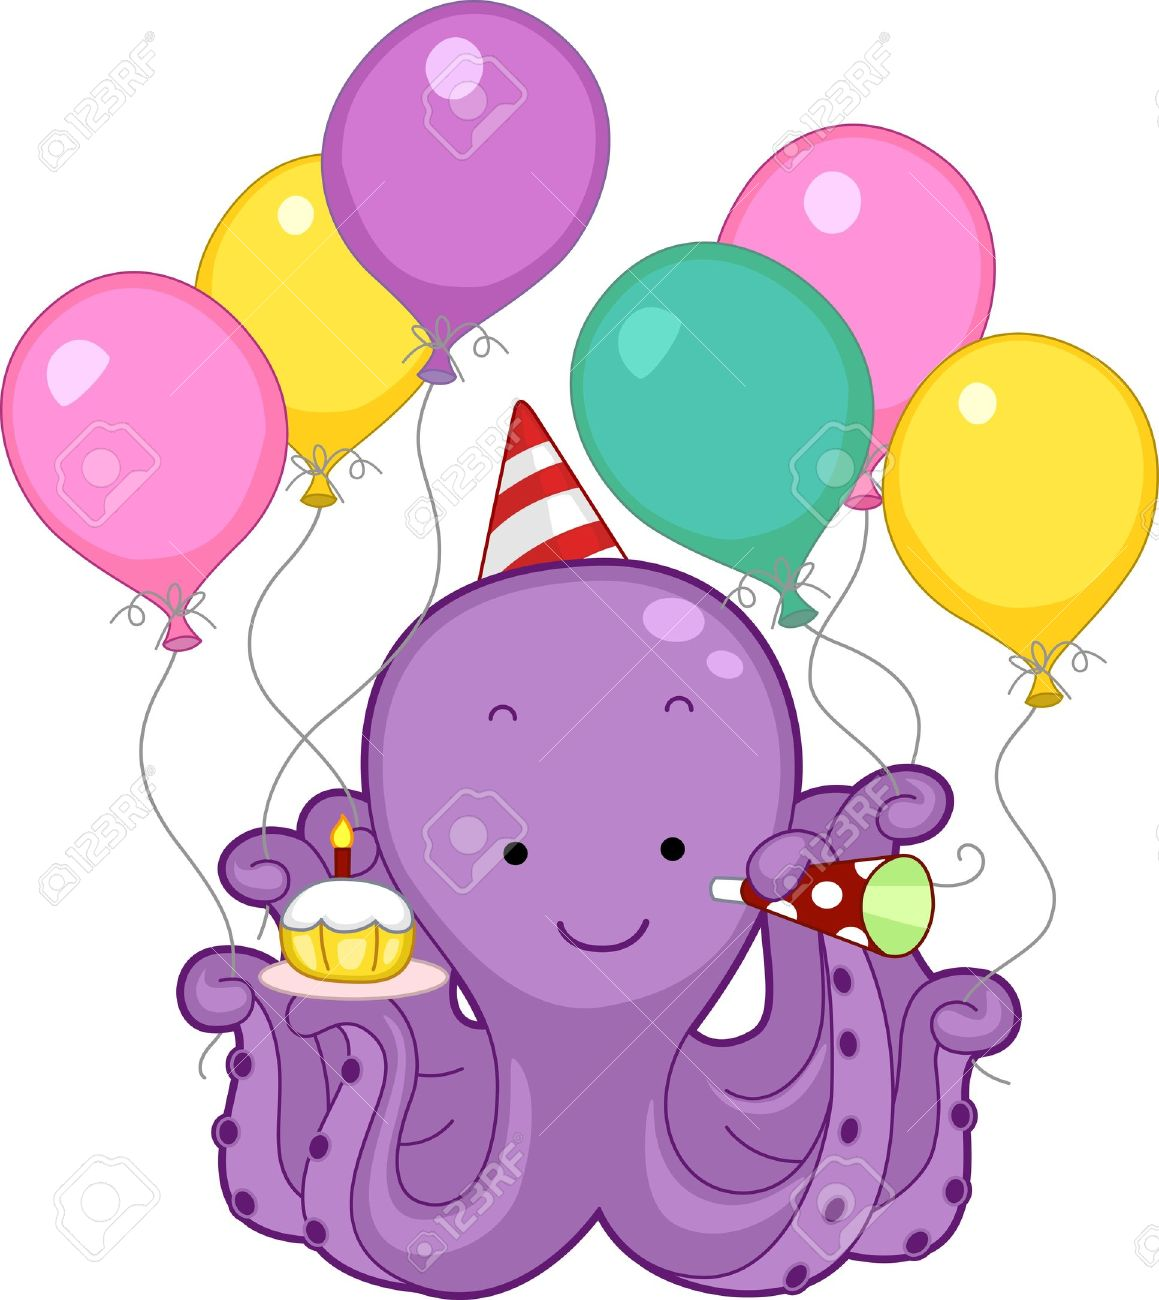 12917514-Illustration-of-an-Octopus-Cele